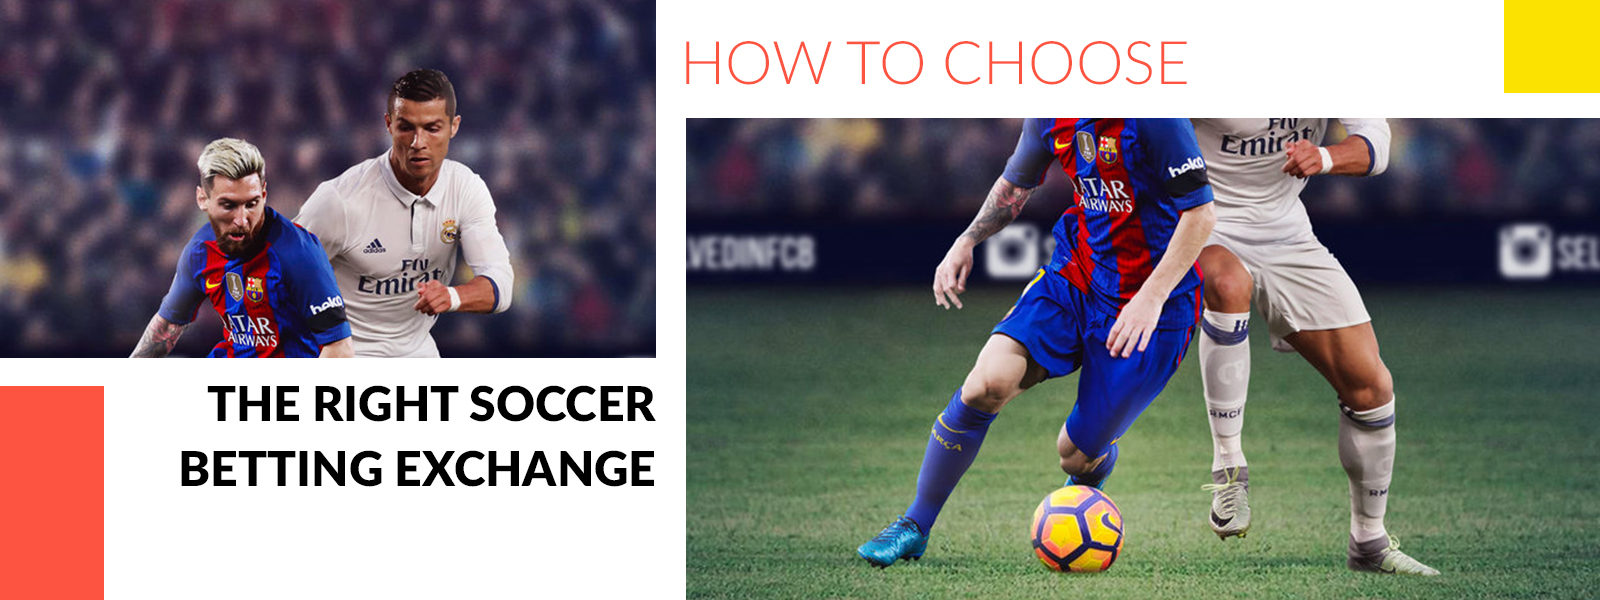 How to Choose the Right Soccer Betting Exchange